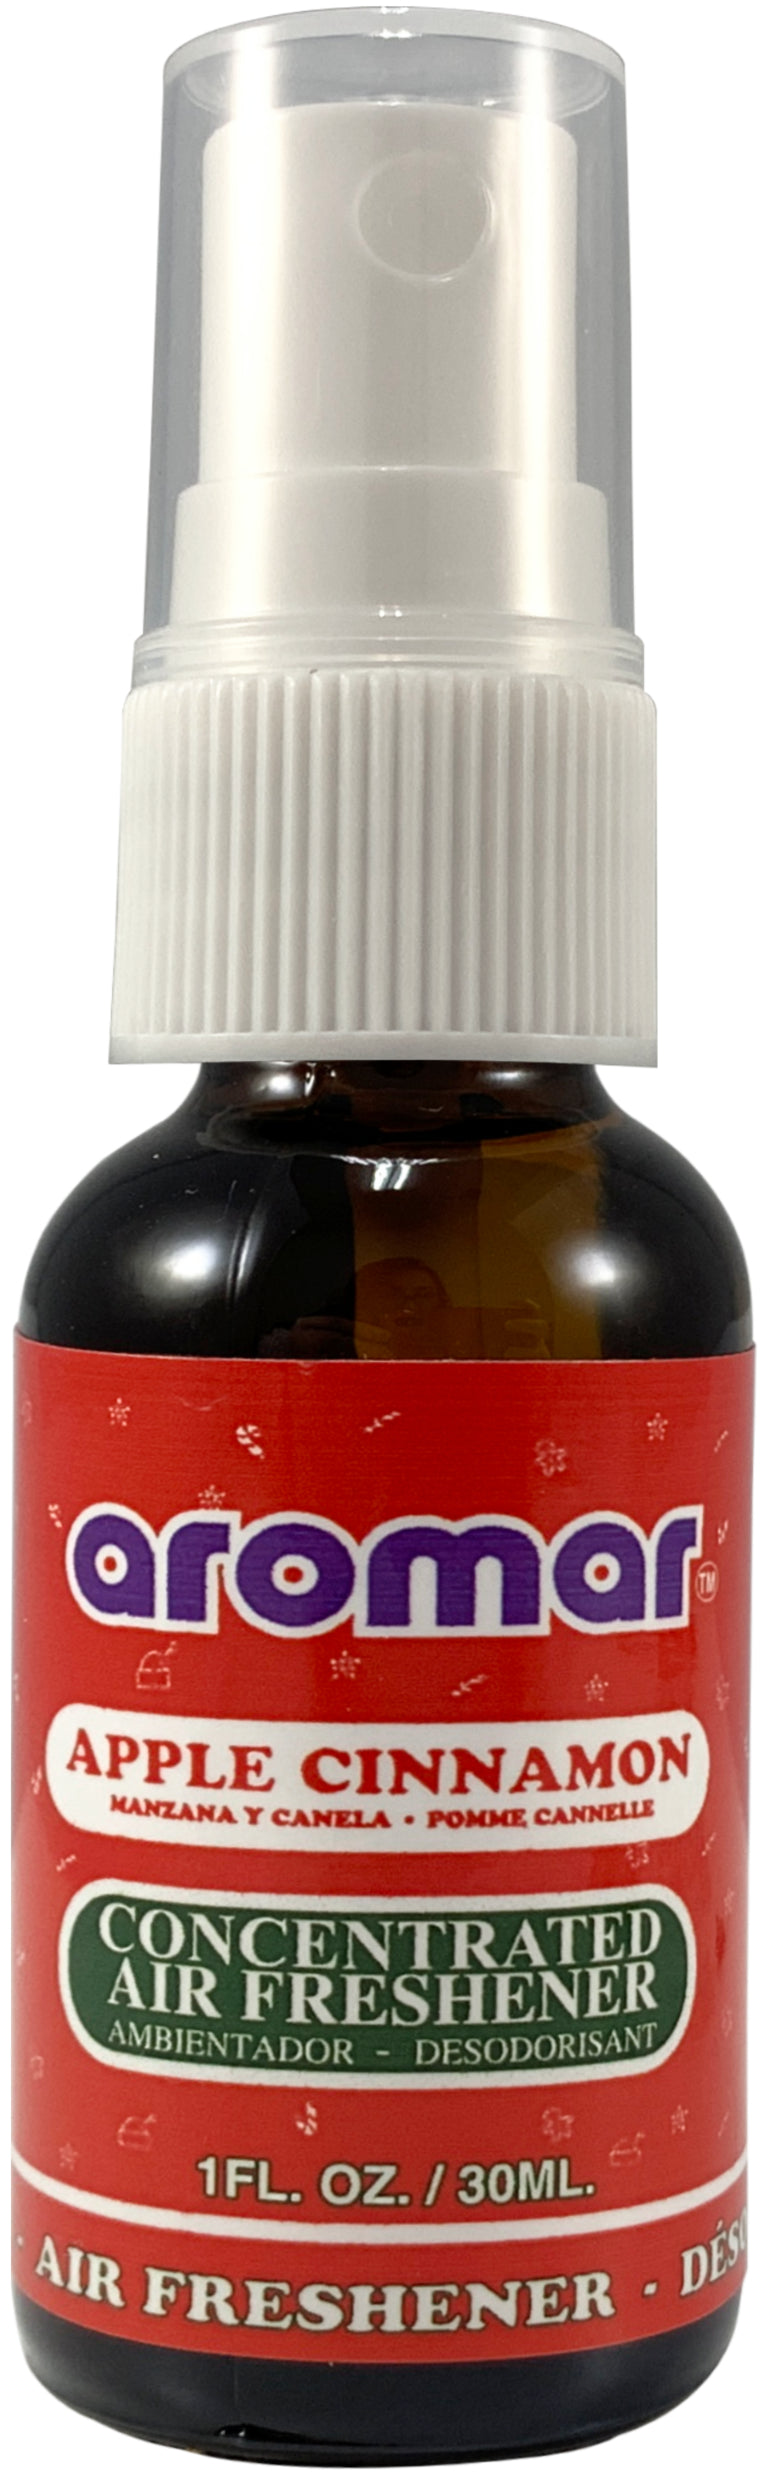 Aromar Holiday APPLE CINNAMON